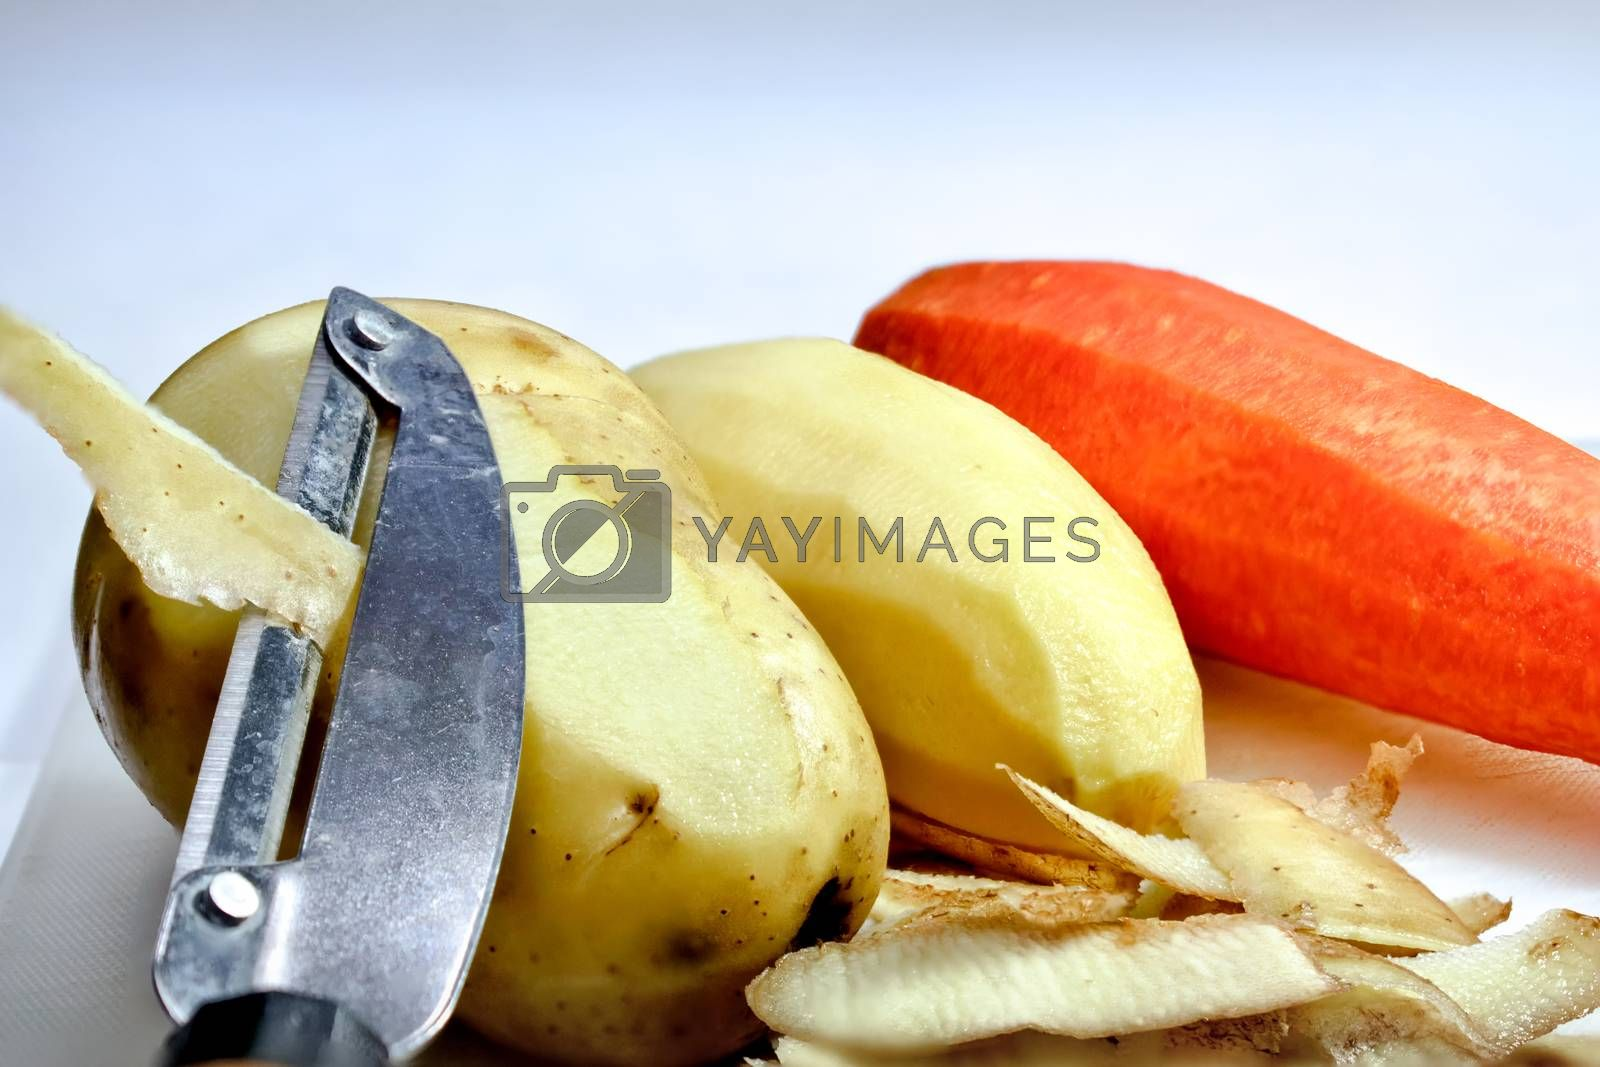 Peeled Potatoes and a Carrot during Preparation